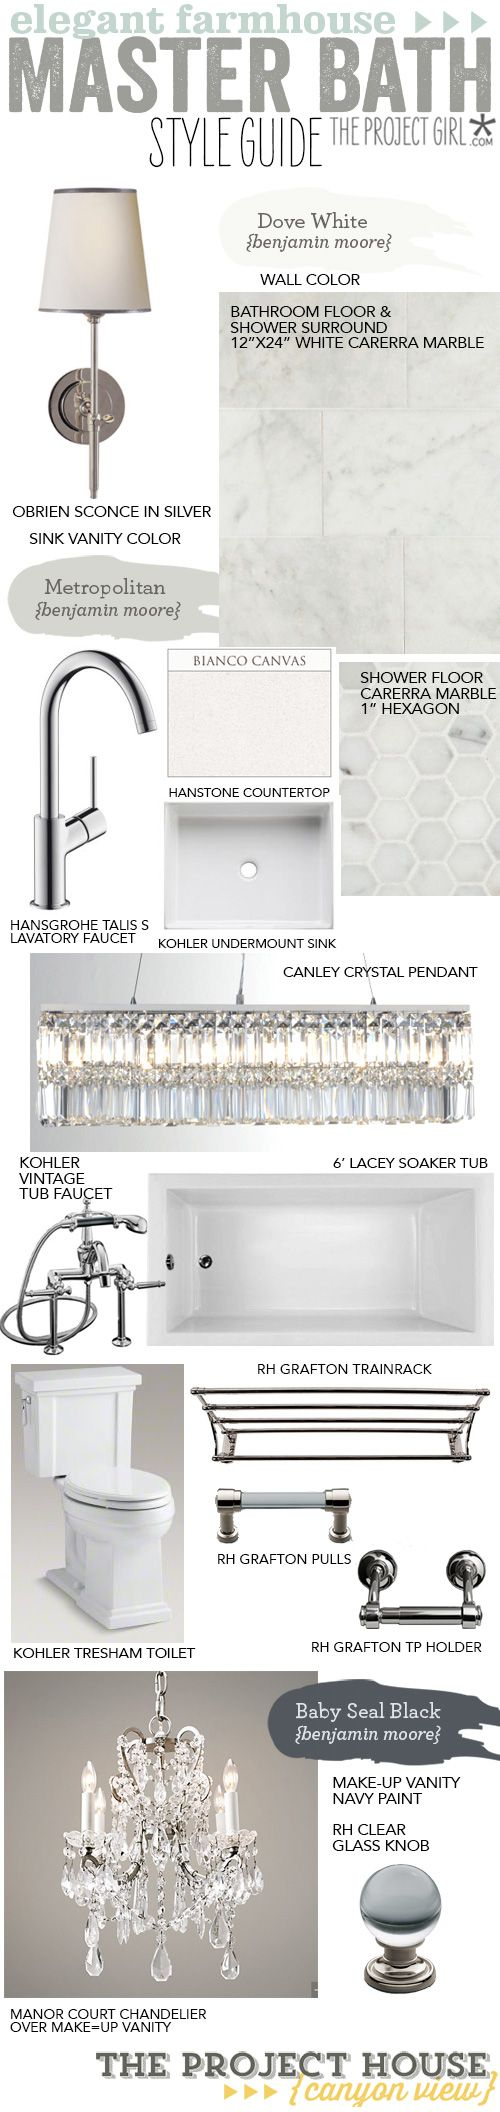 Master Bathroom Style Guide – Elegant Farmhouse | Jenallyson - The Project Girl - Fun Easy Craft Projects including Home Improvement and Decorating - For Women and Moms